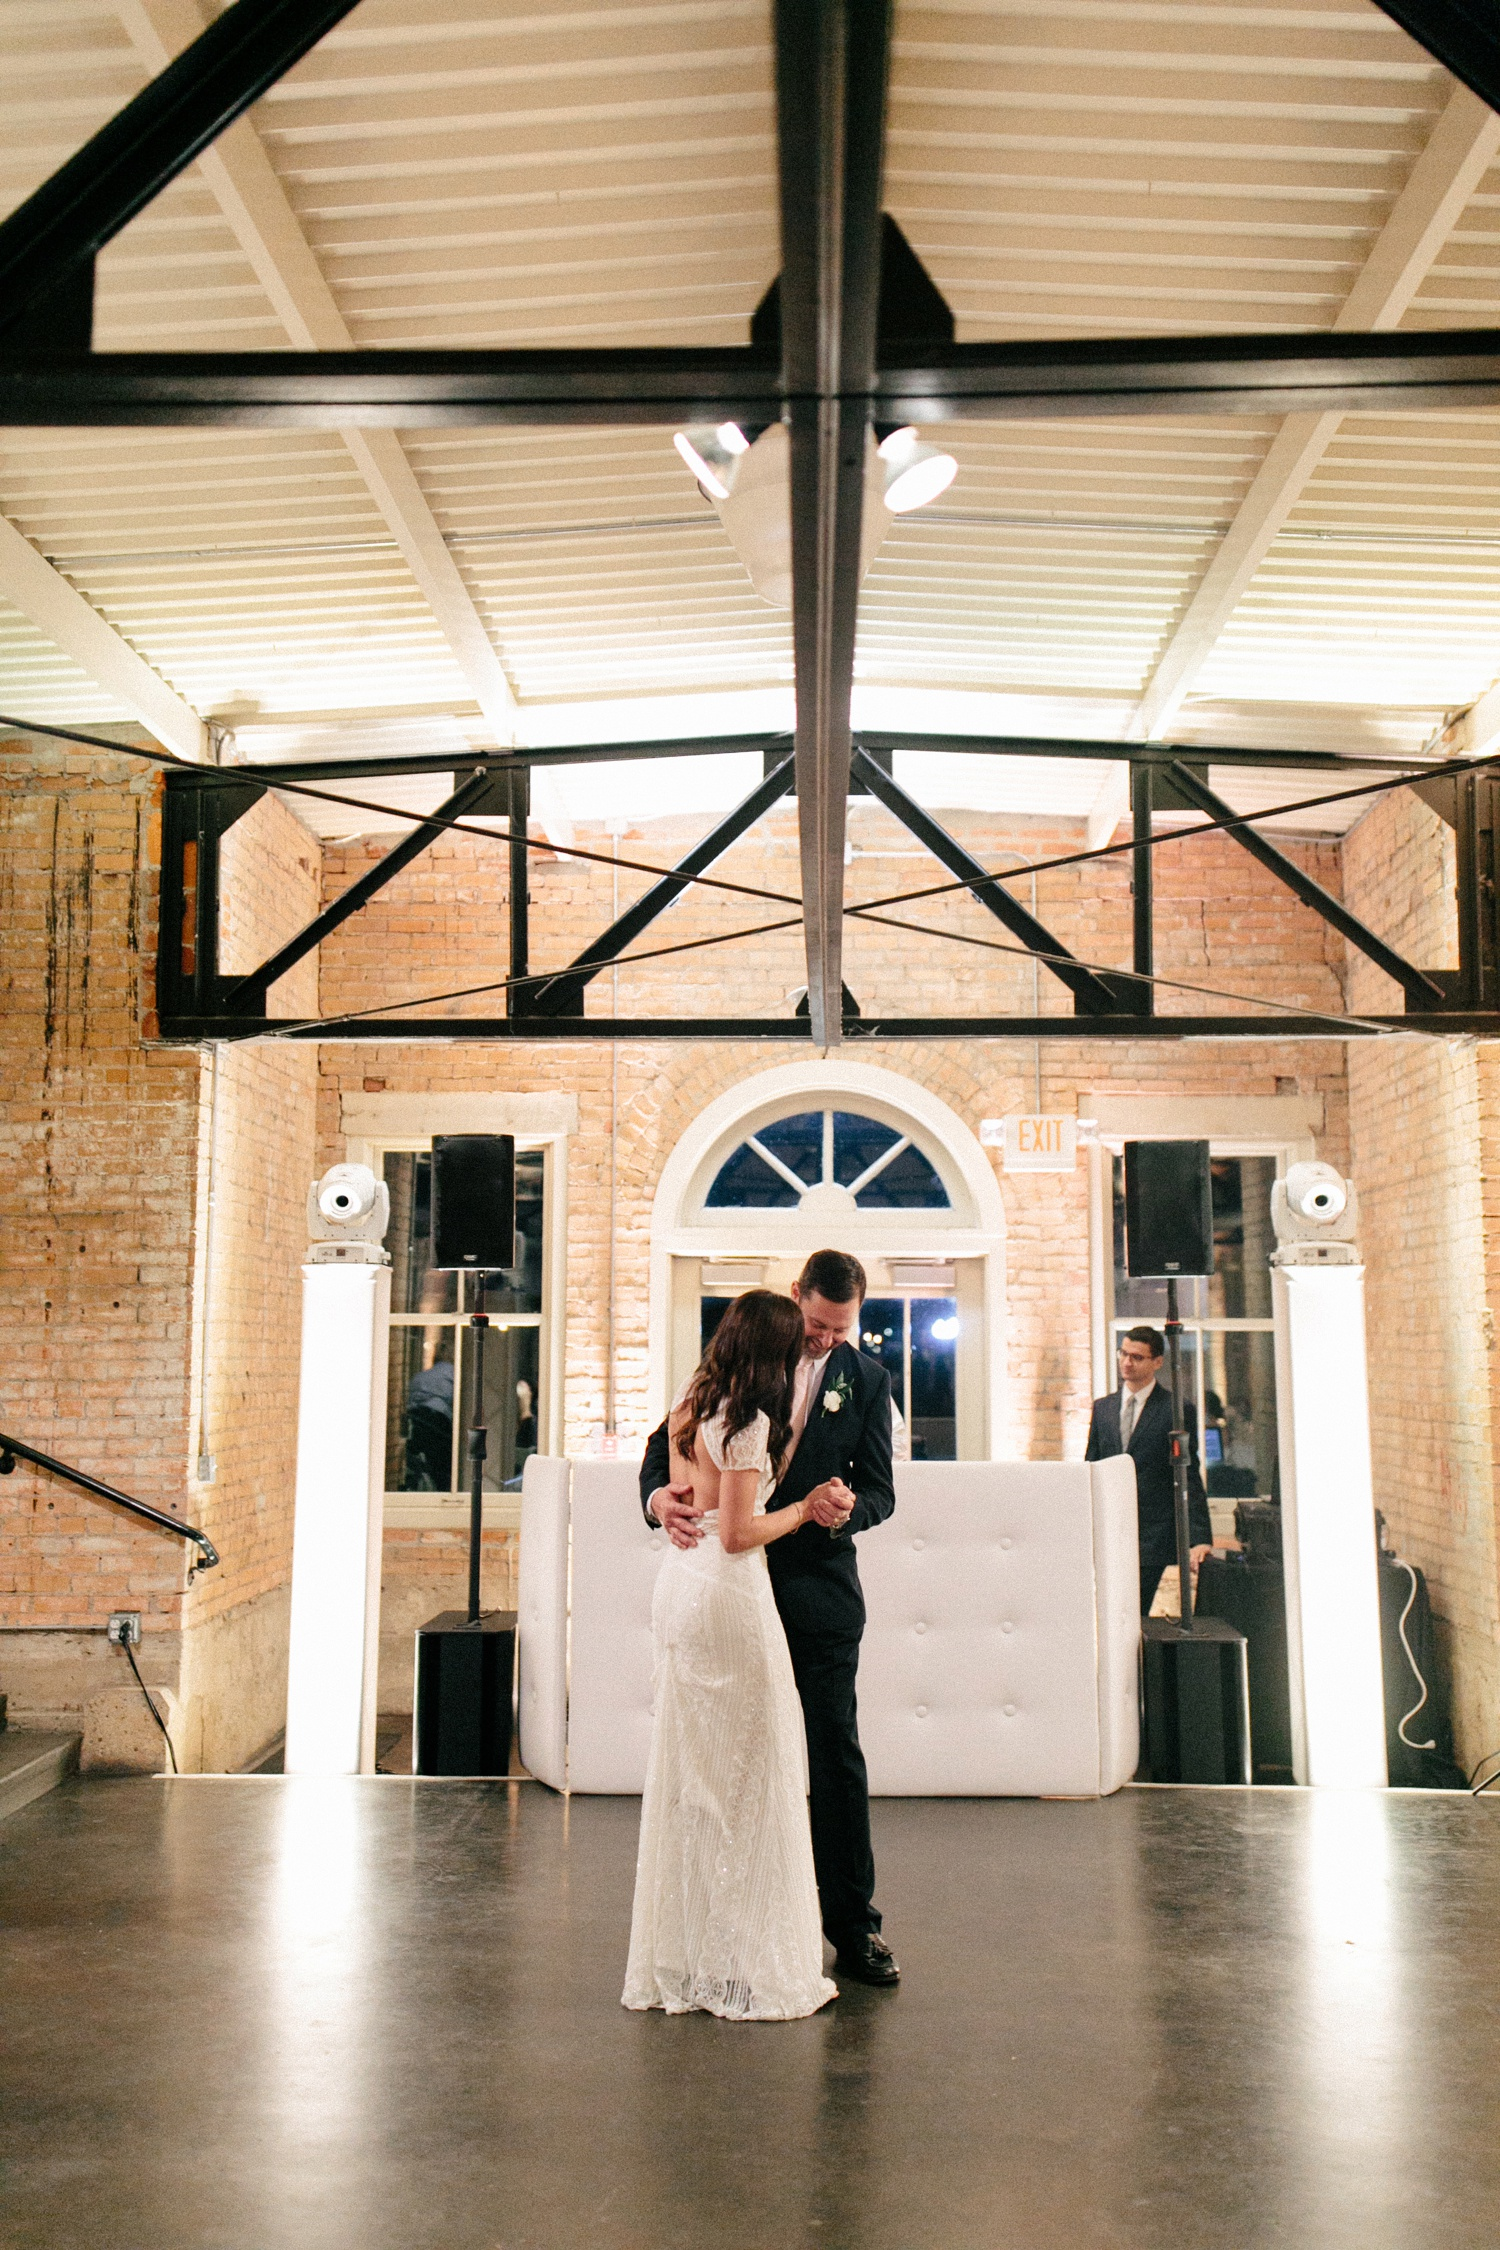 Kadee + Tyler | a raw, emotional wedding at the Filter Building on White Rock Lake in Dallas, TX by North Texas Wedding Photographer, Rachel Meagan Photography 208